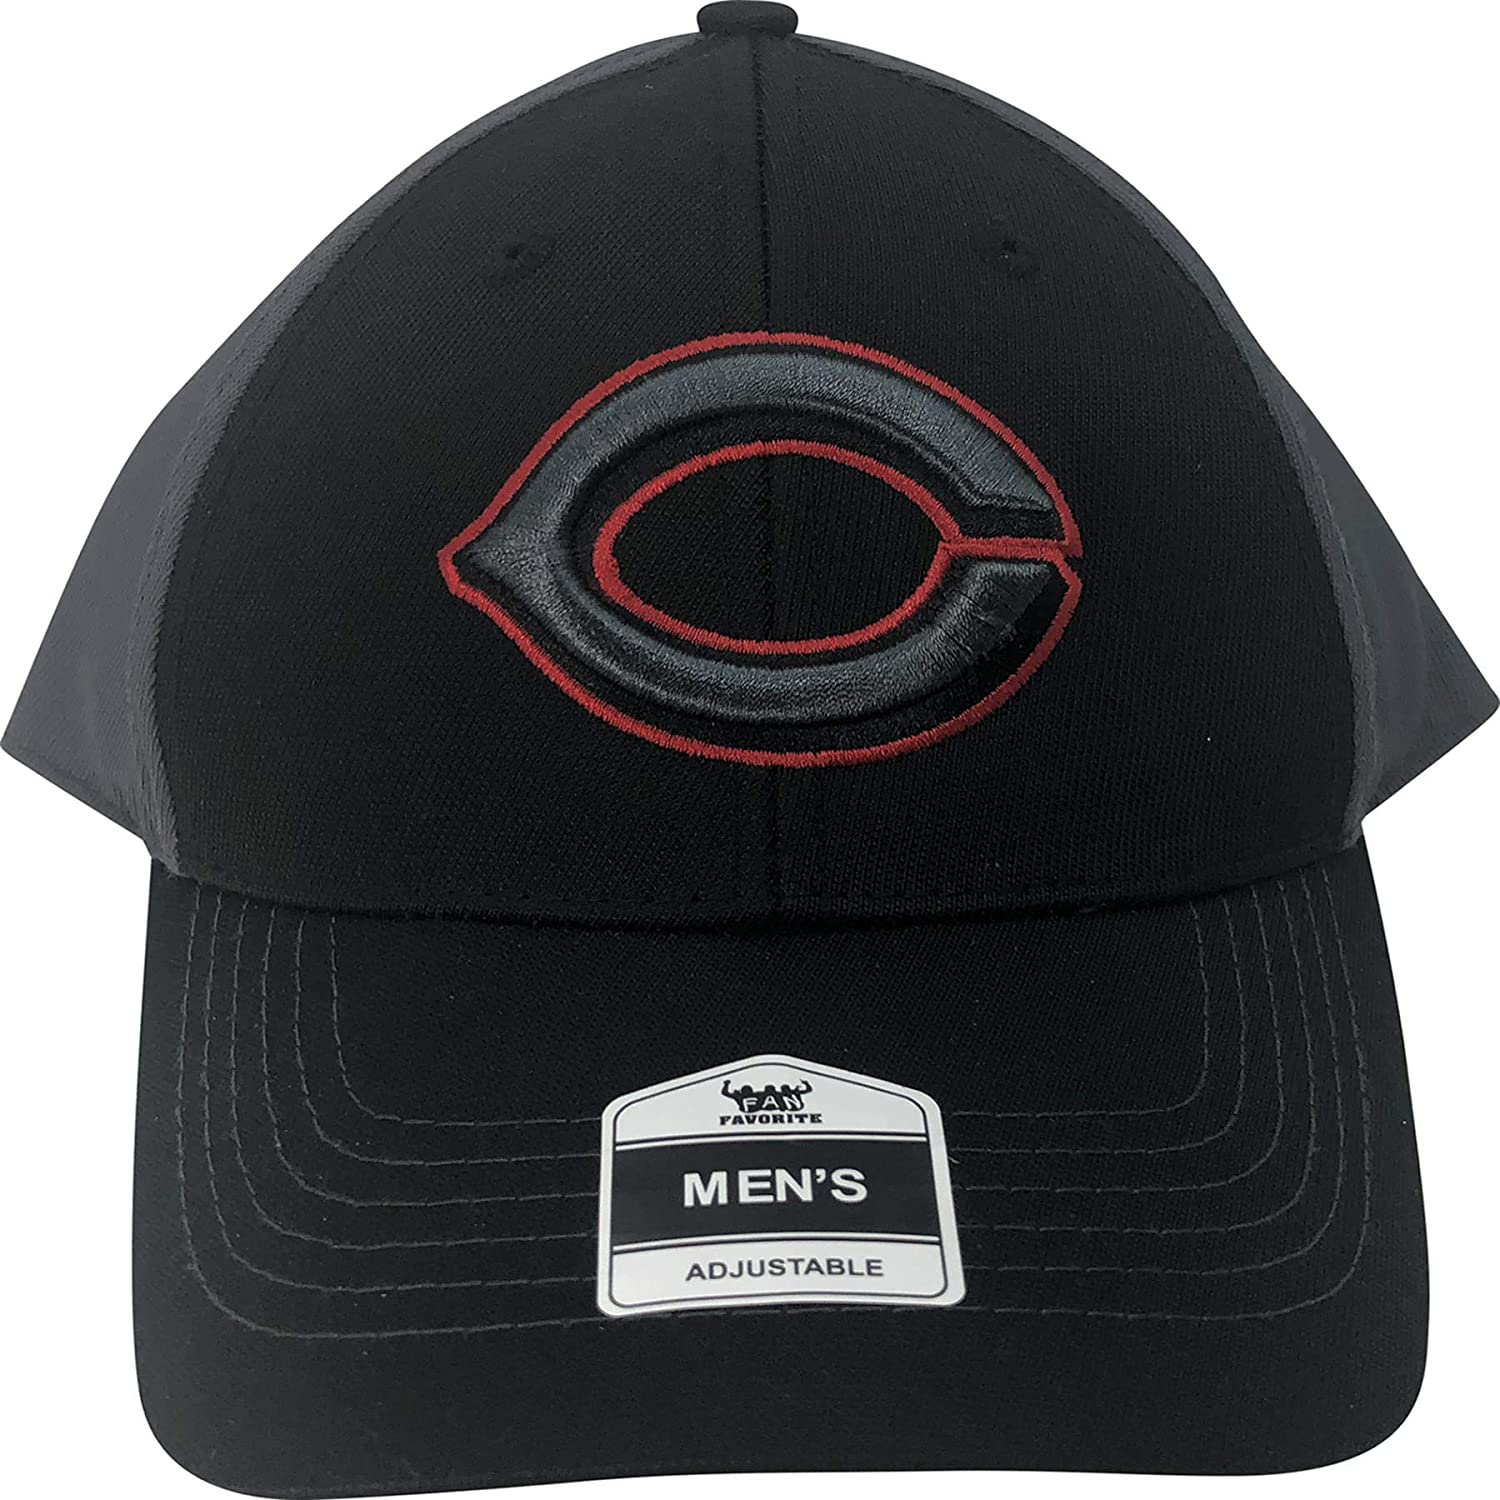 301a90221 Amazon.com : Fan Favorite MLB Cincinnati Reds Adjustable Hat Black : Sports  & Outdoors